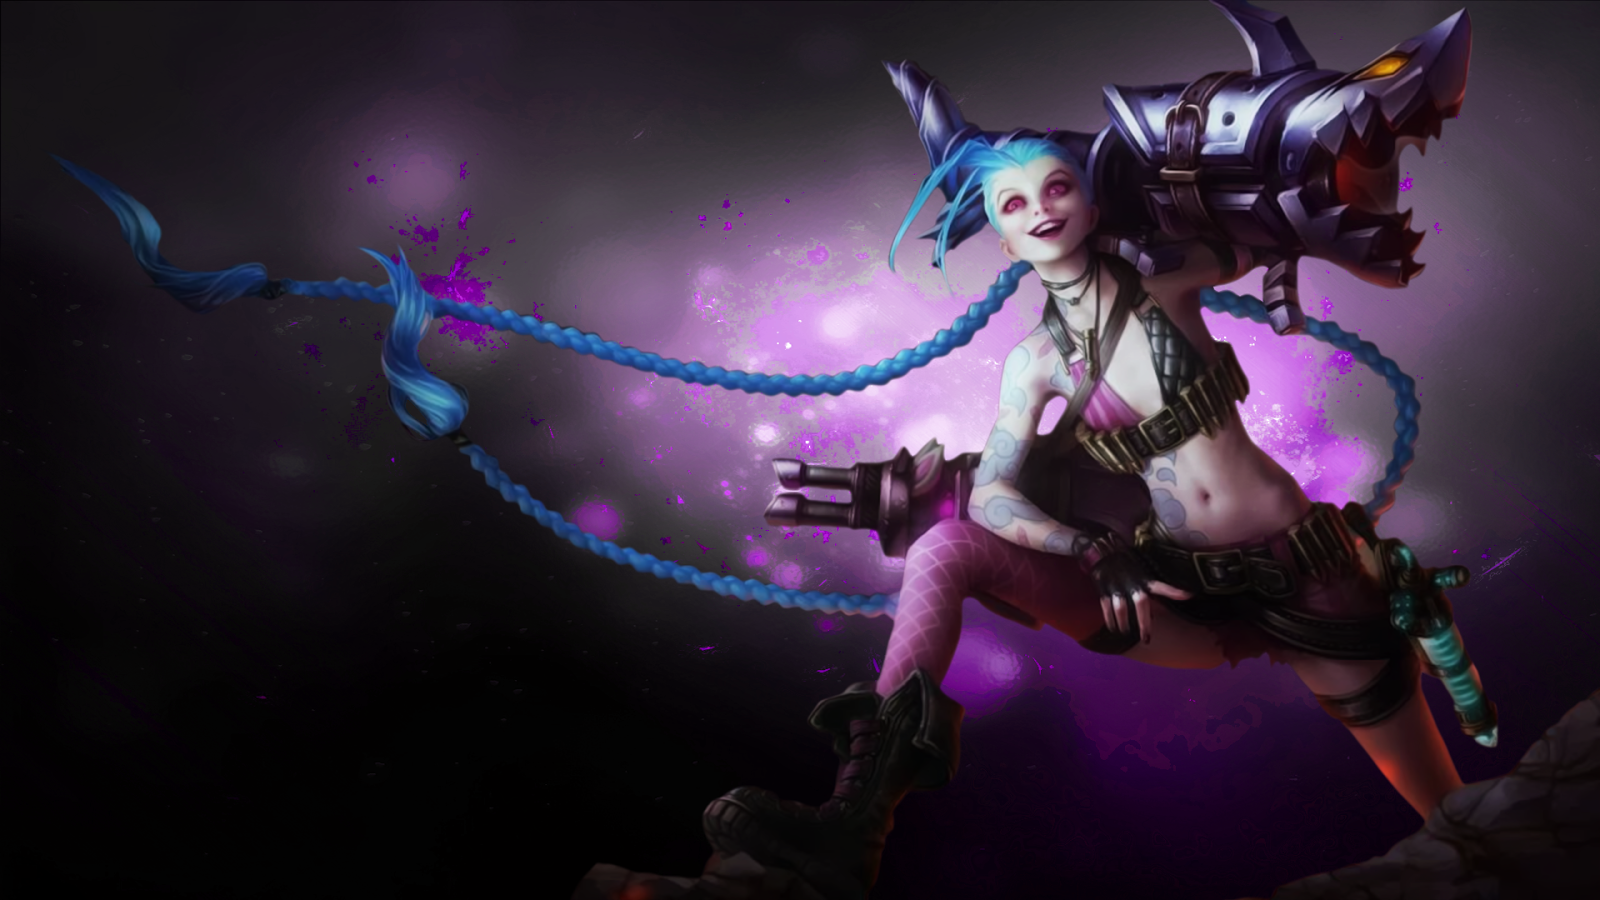 JinX League of Legends Wallpaper full HD Desktop 4 - Garen Build S Top